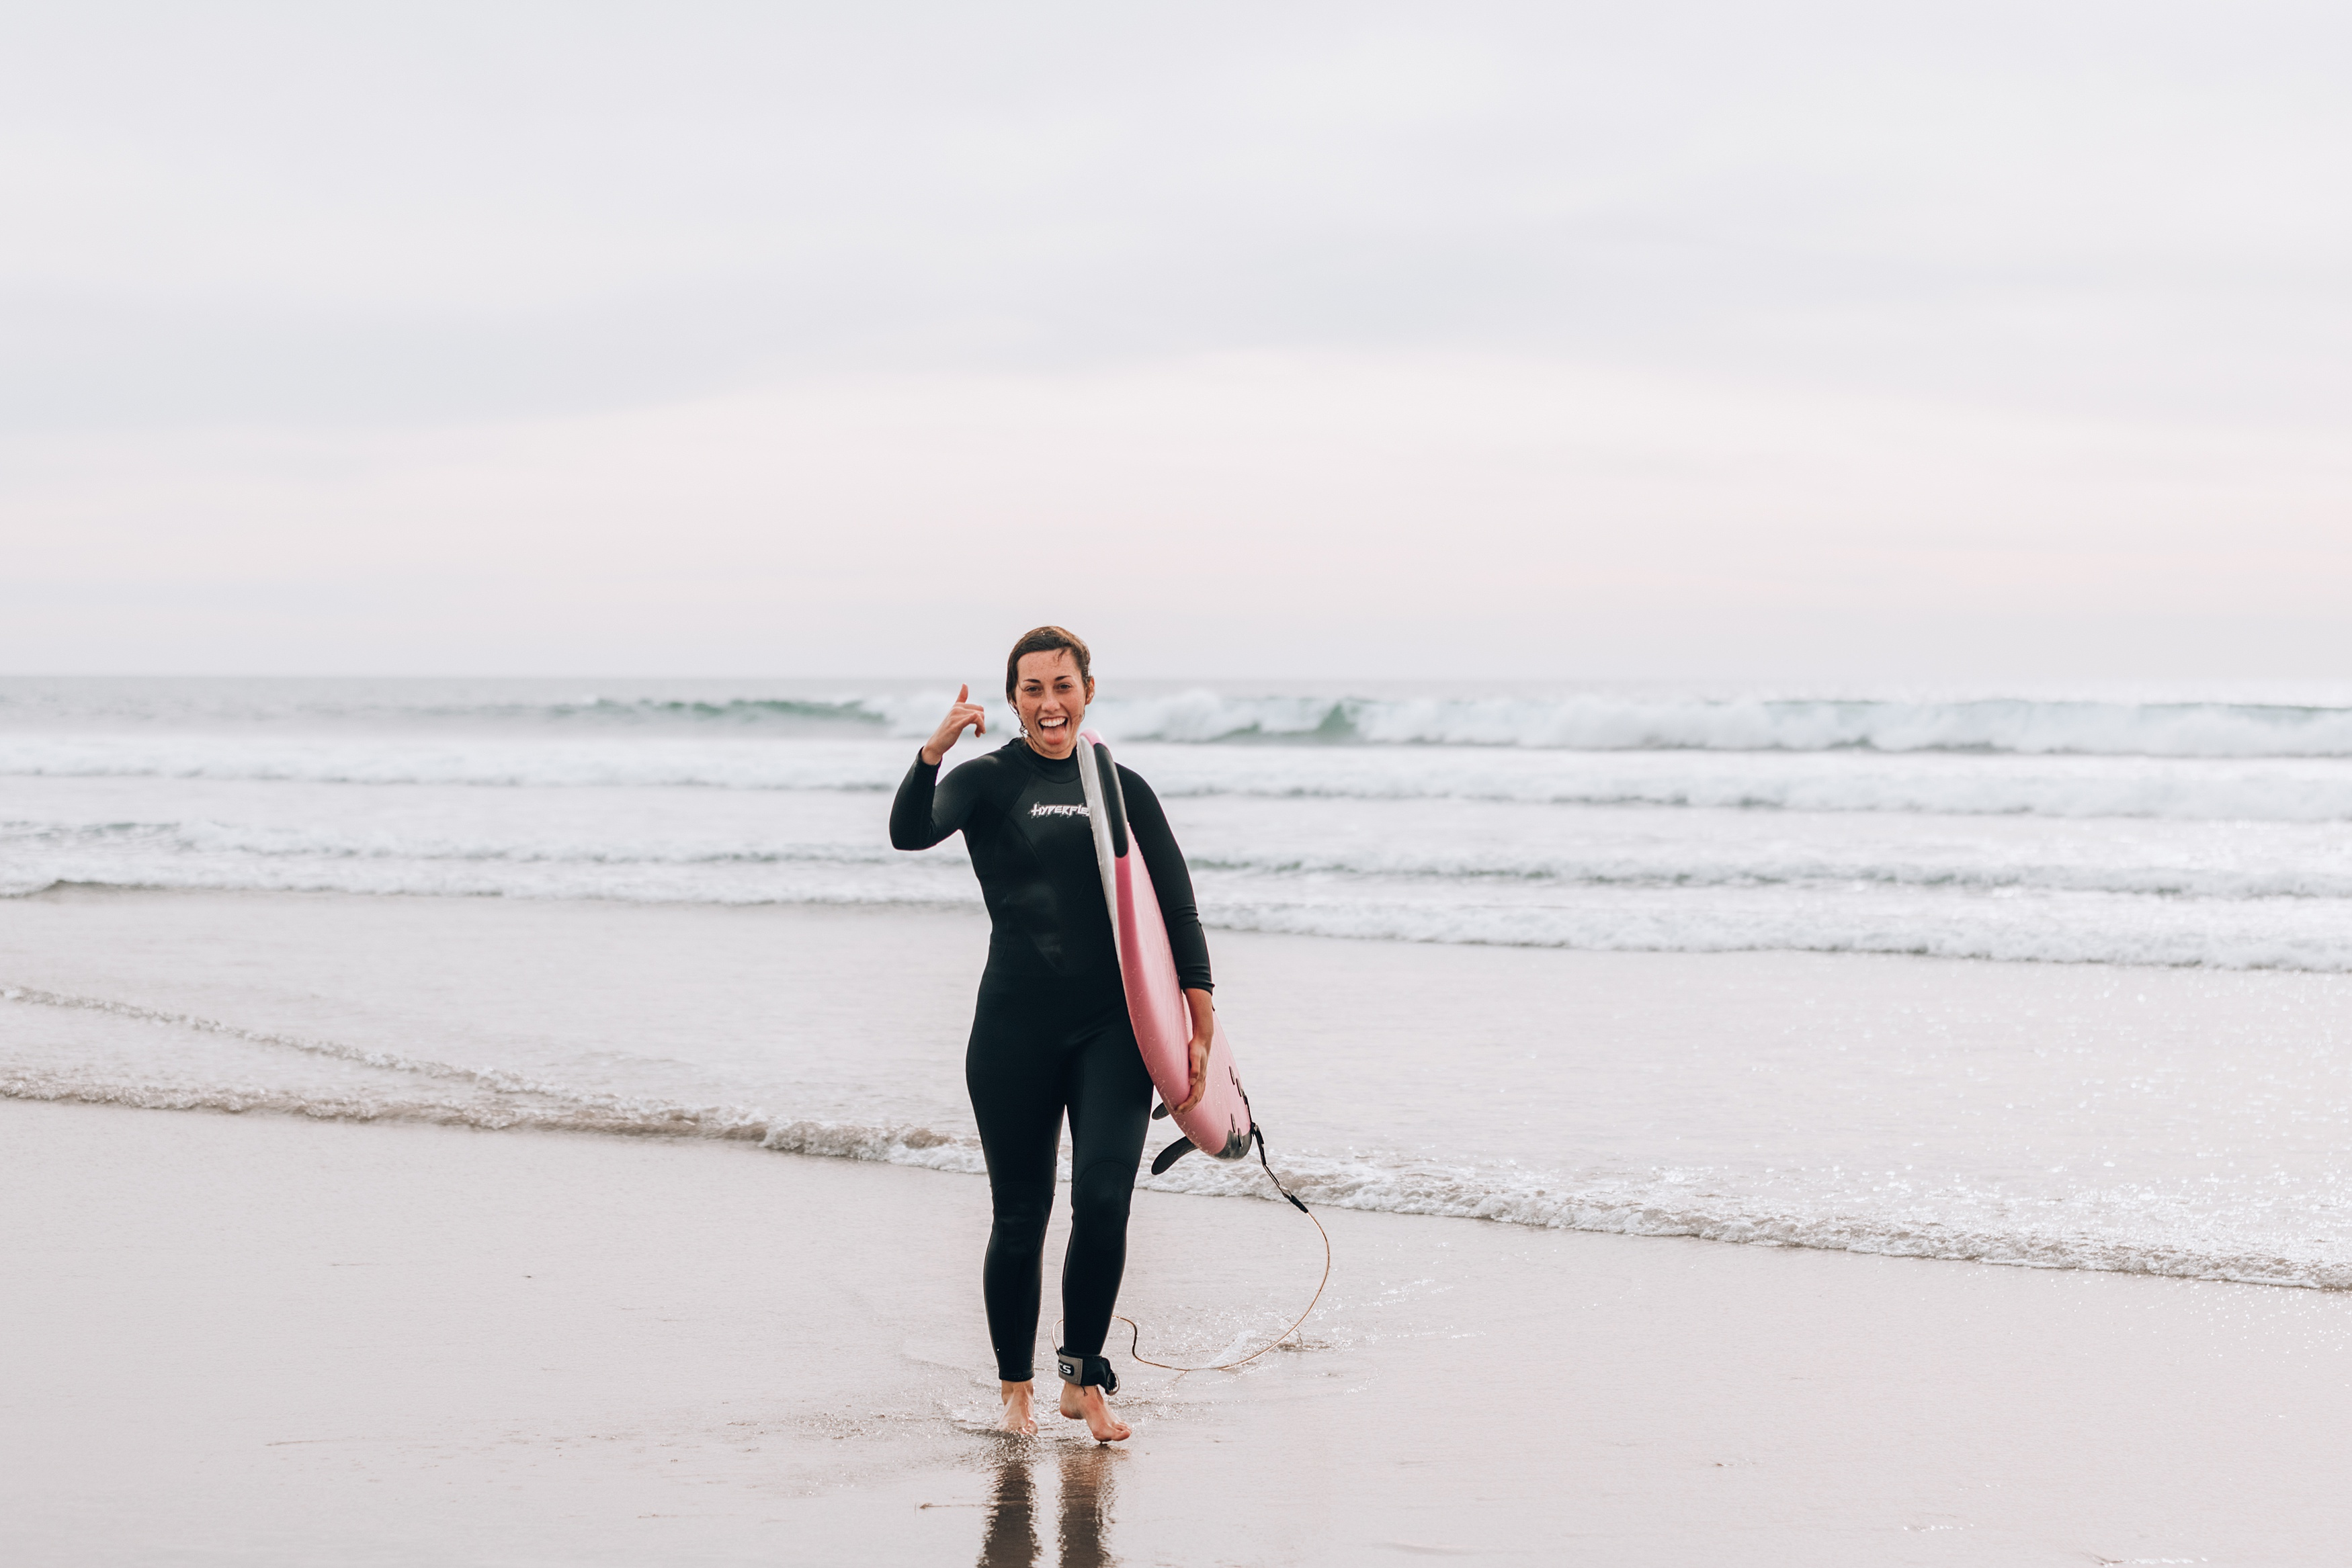 girl walking on beach in wetsuit with surfboard